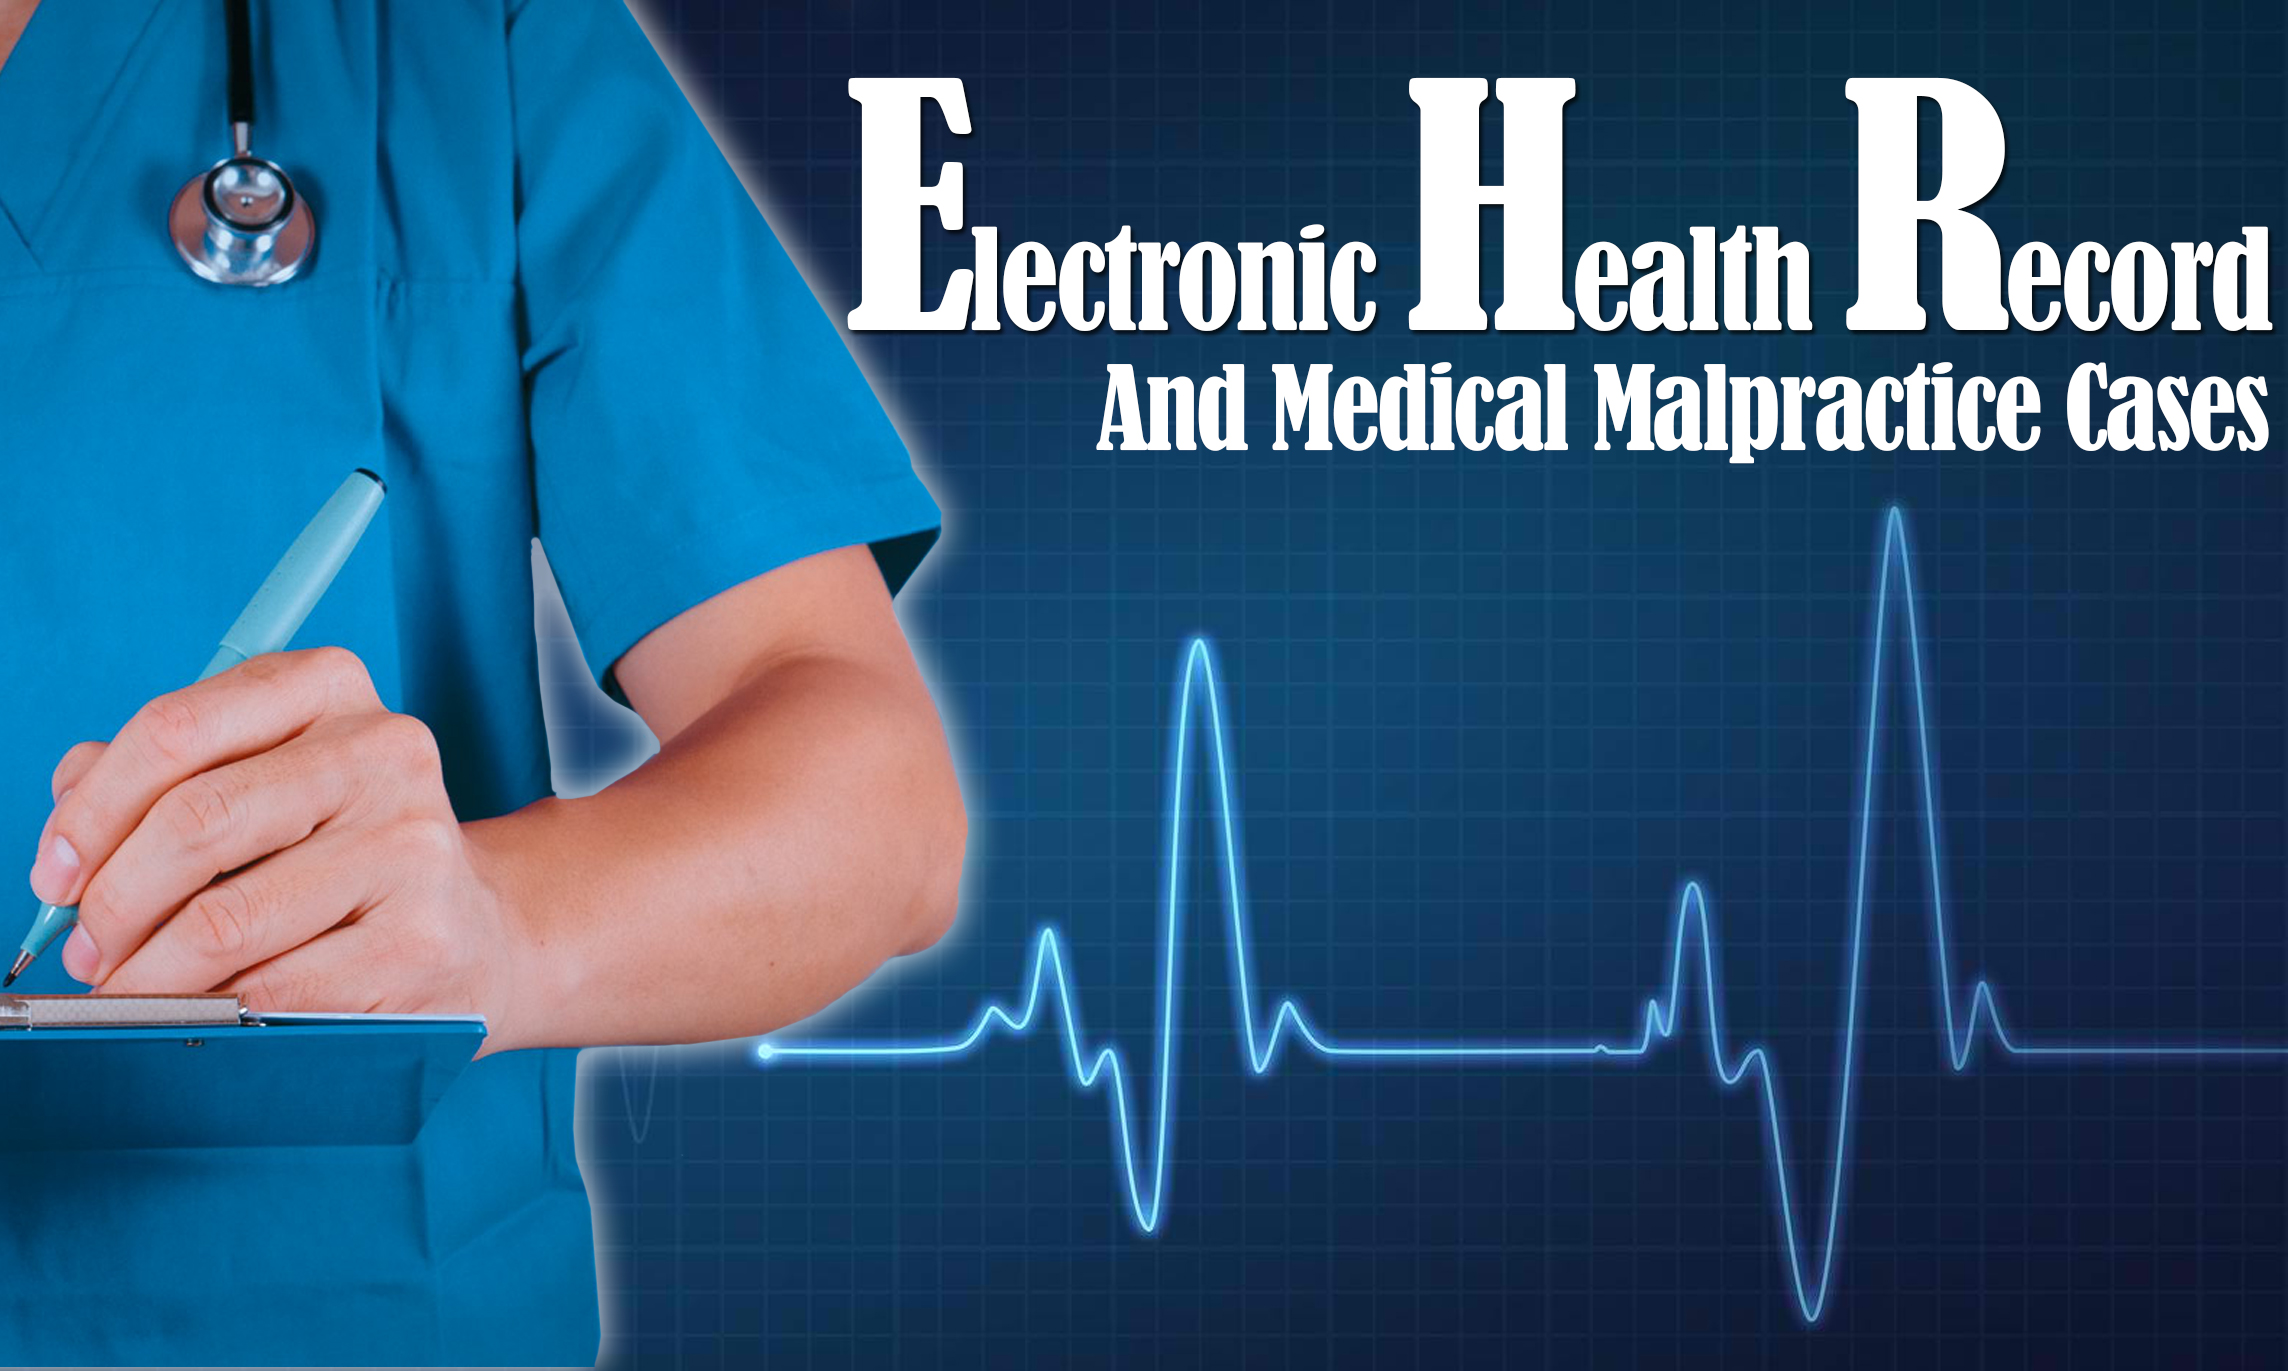 EHR And Medical Malpractice Cases